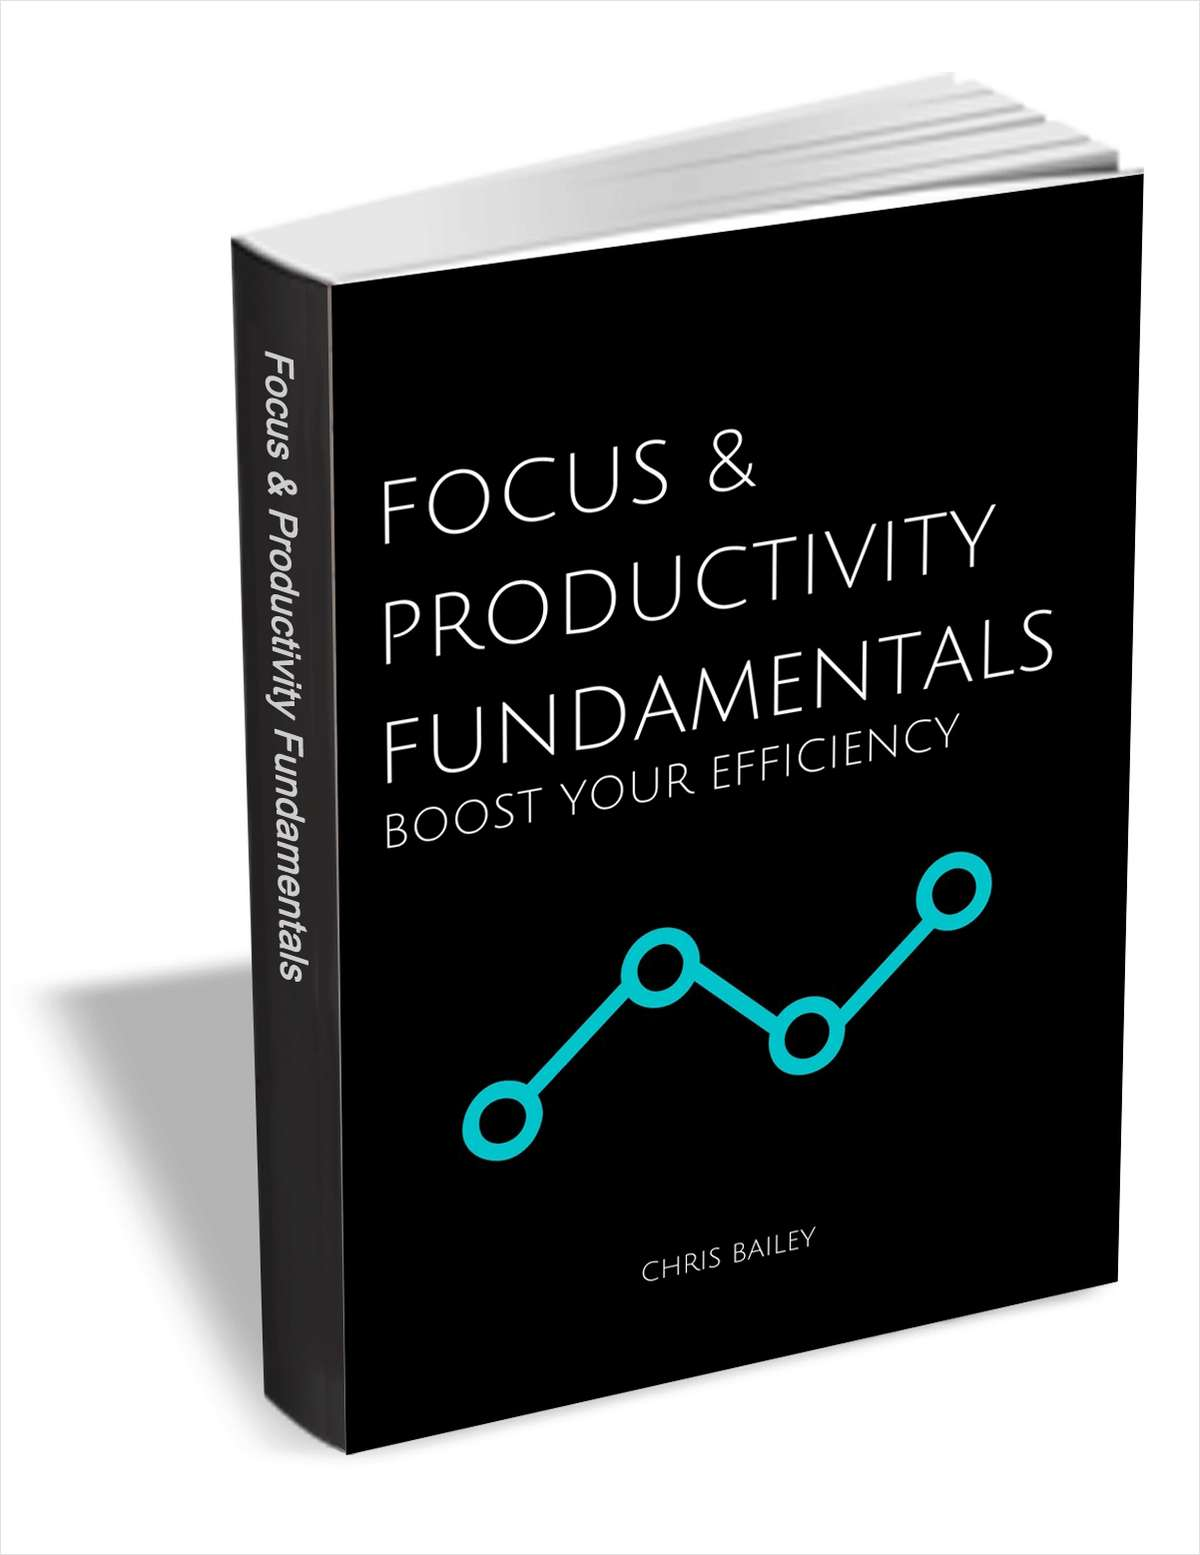 Focus & Productivity Fundamentals - Boost Your Efficiency